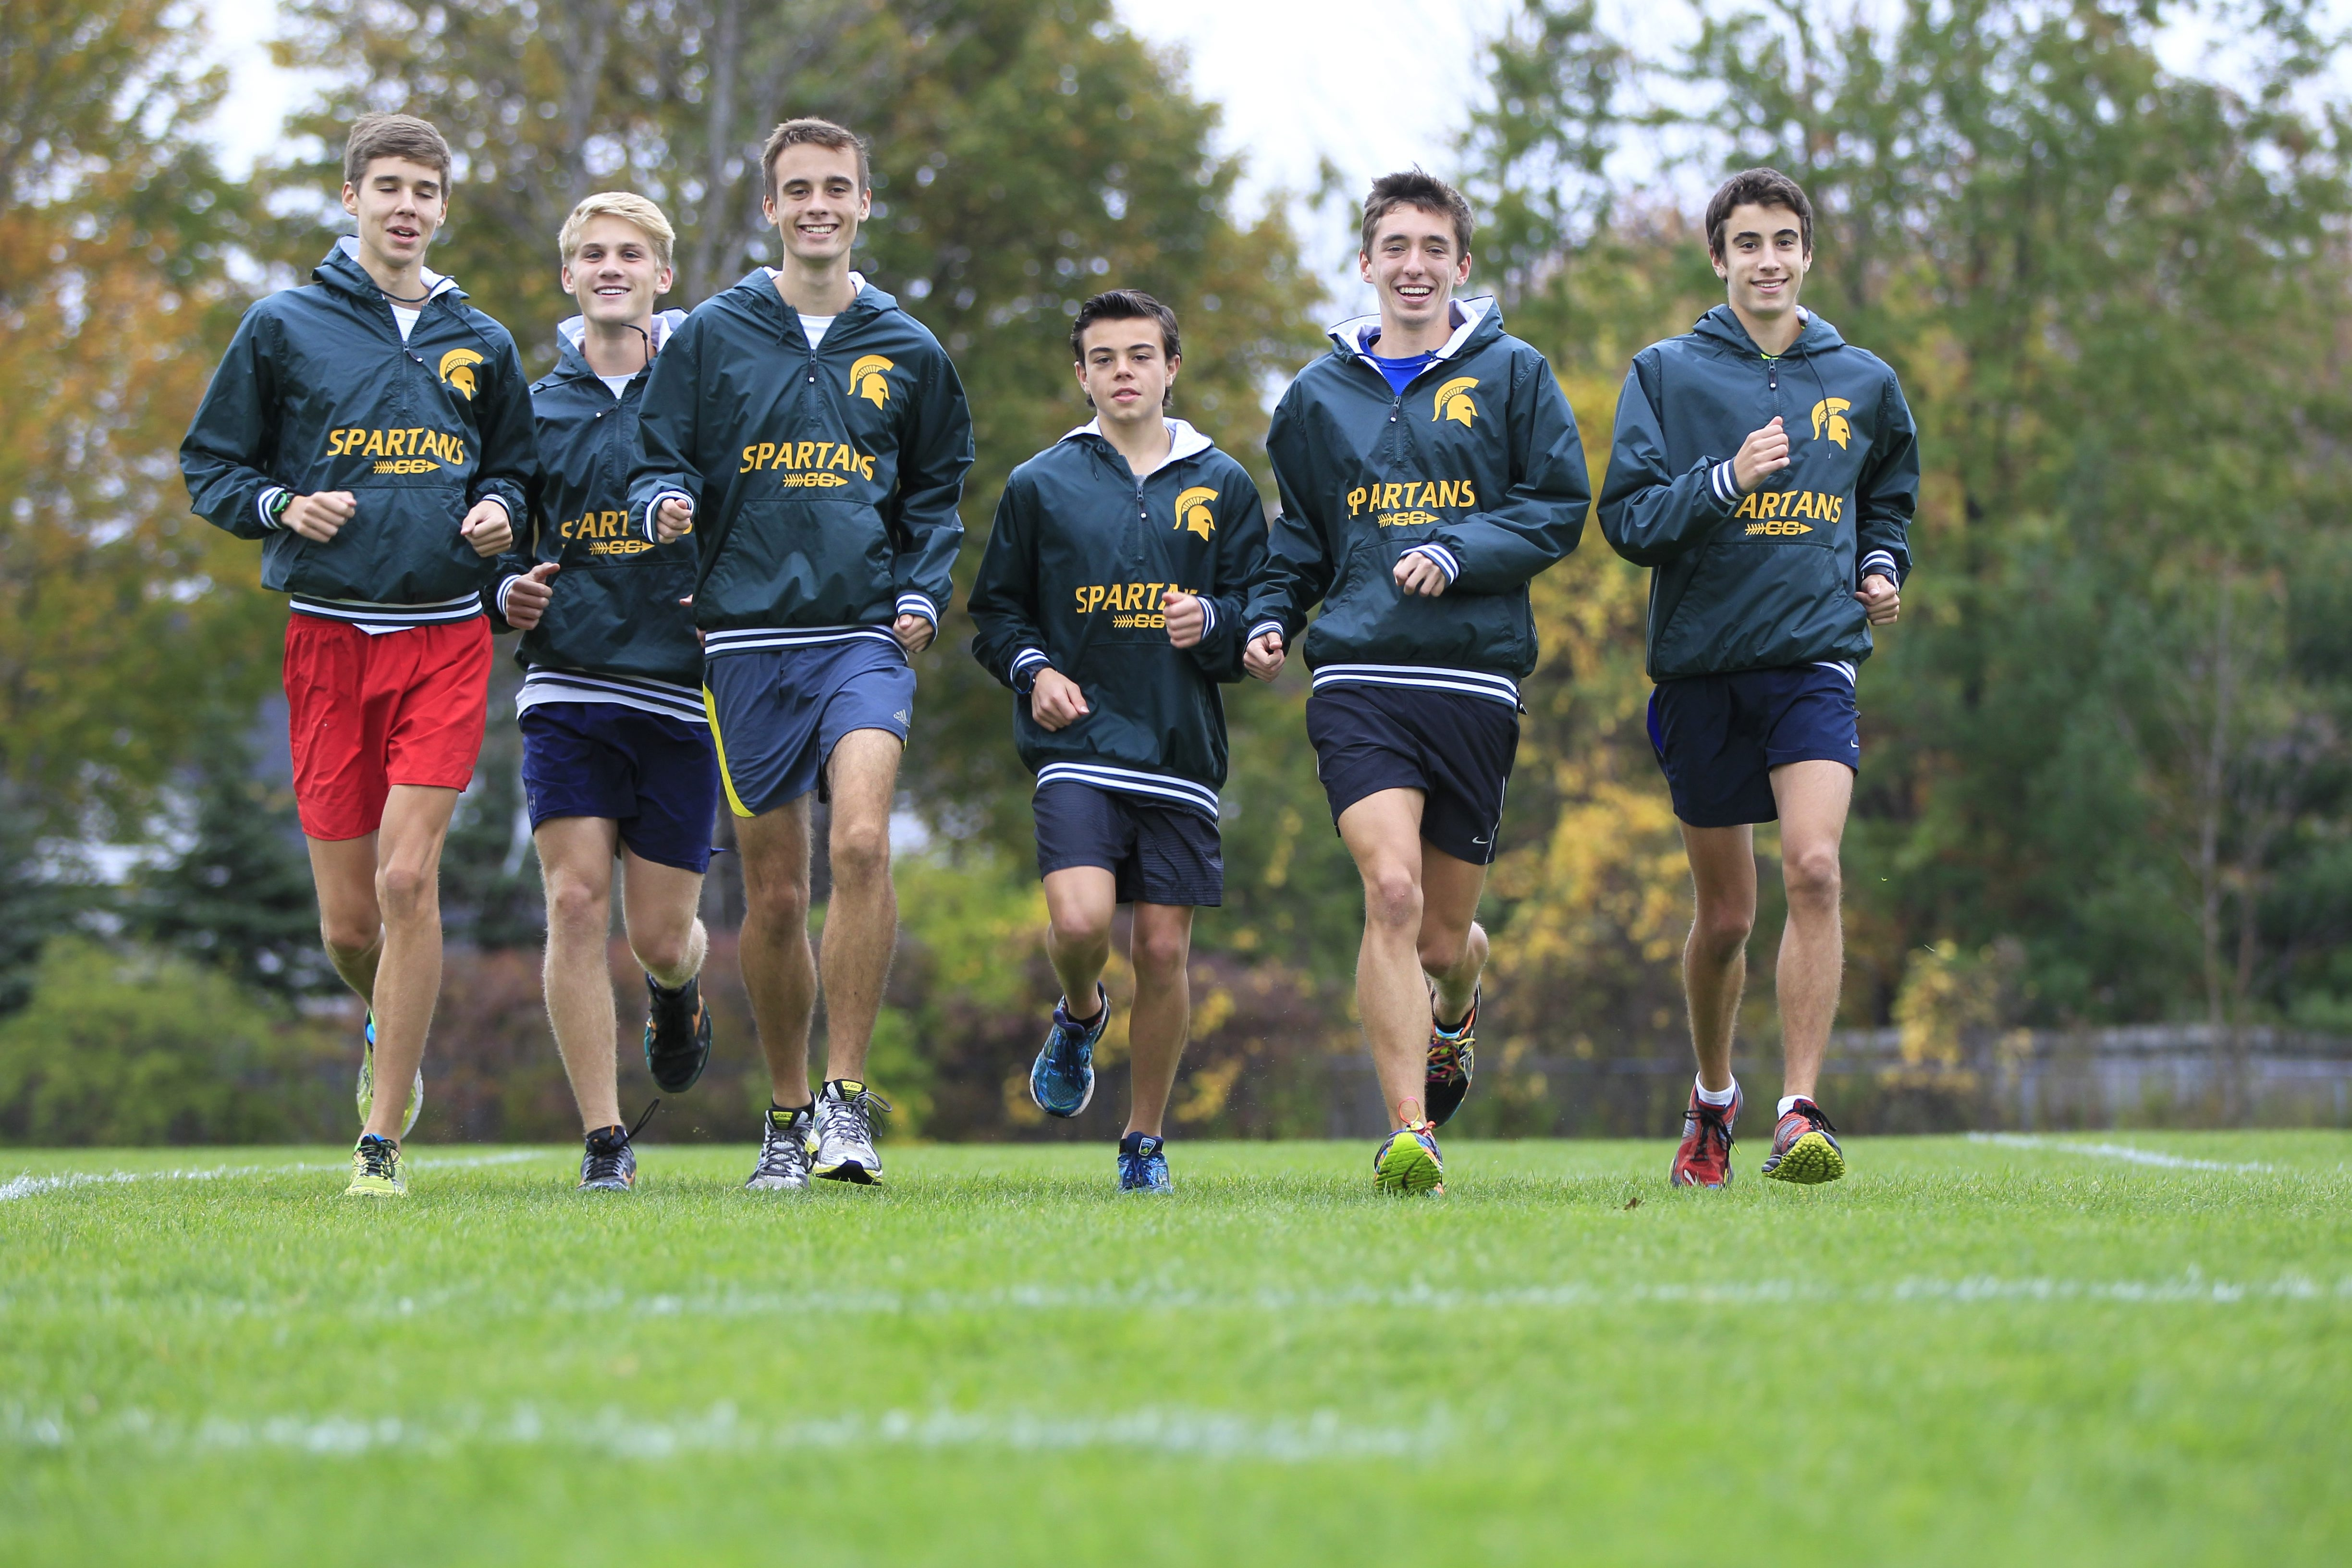 Williamsville North boys cross country runners, from left, are Austin Oetinger, Ryan Konotopskyj, Mike Leczinsky, Colin Begley, Patrick Crowley, and Kevin Seitz.